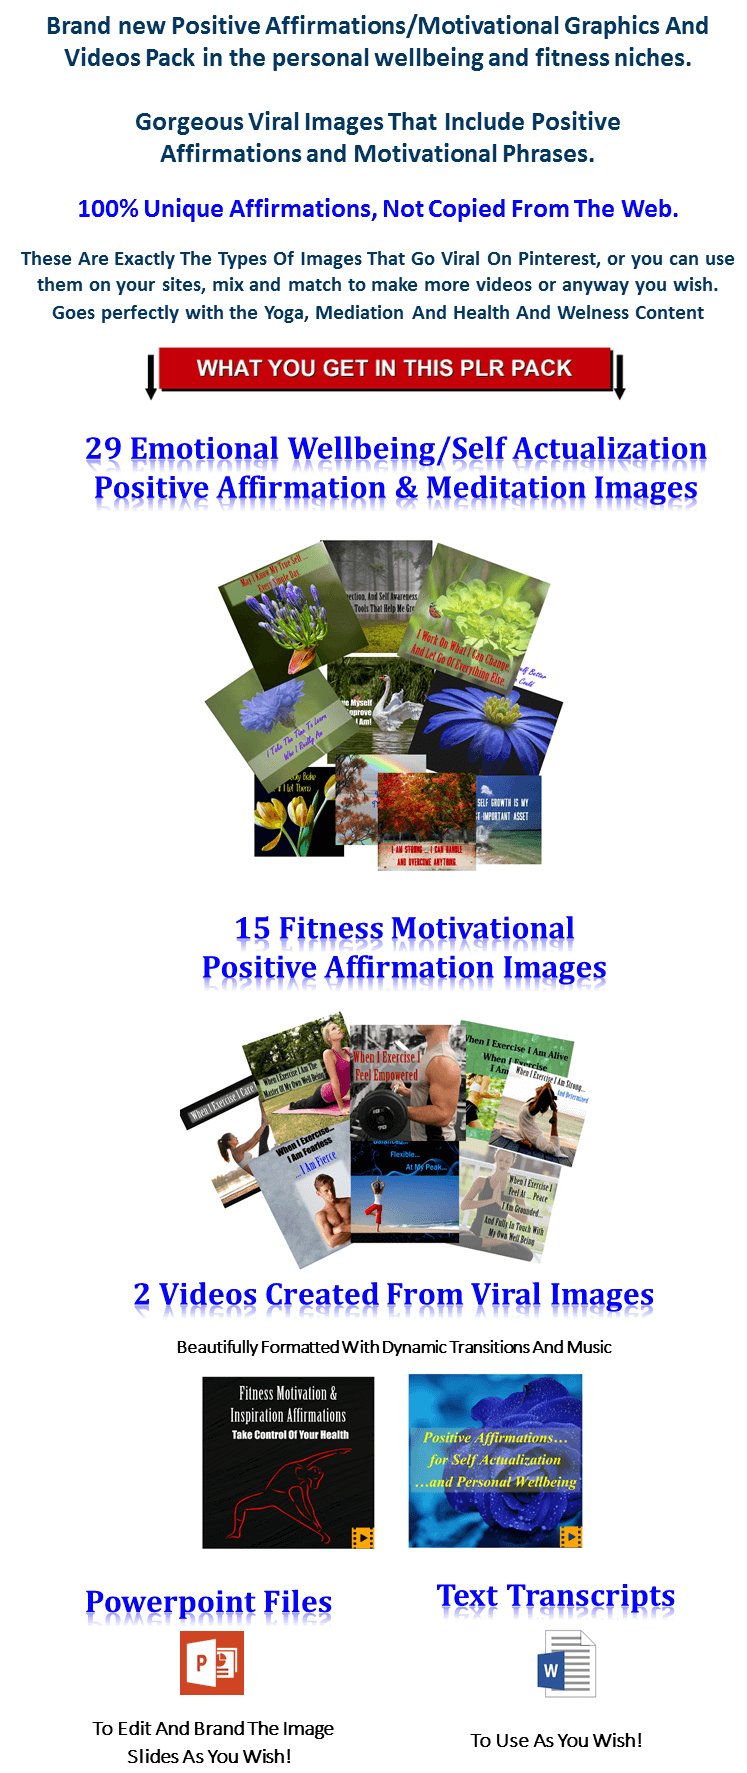 Healing Meditation/Positive Affirmations Videos And Images PLR